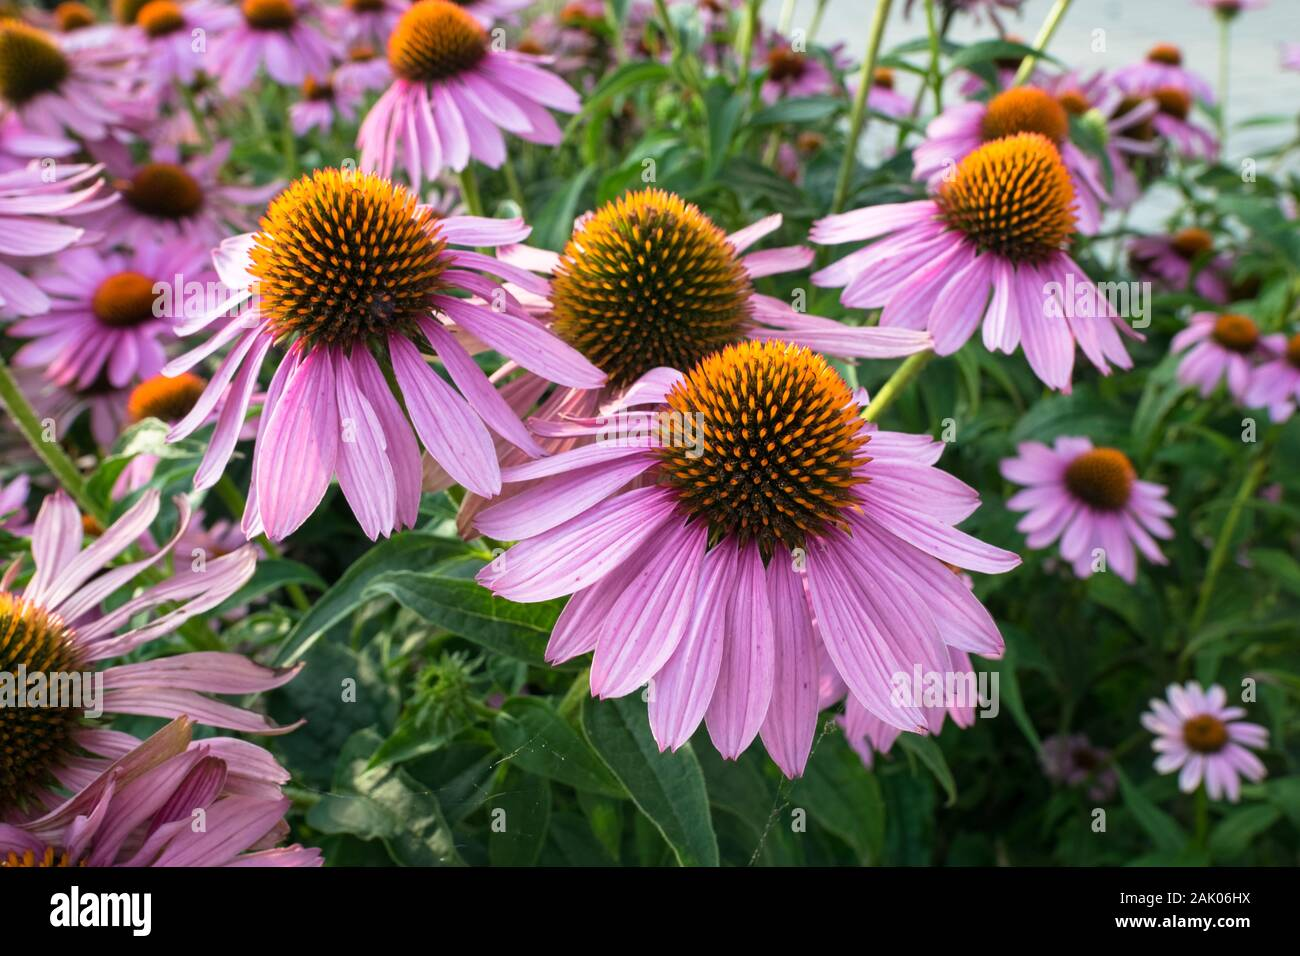 Colorful Echinacea flowers in a park Stock Photo